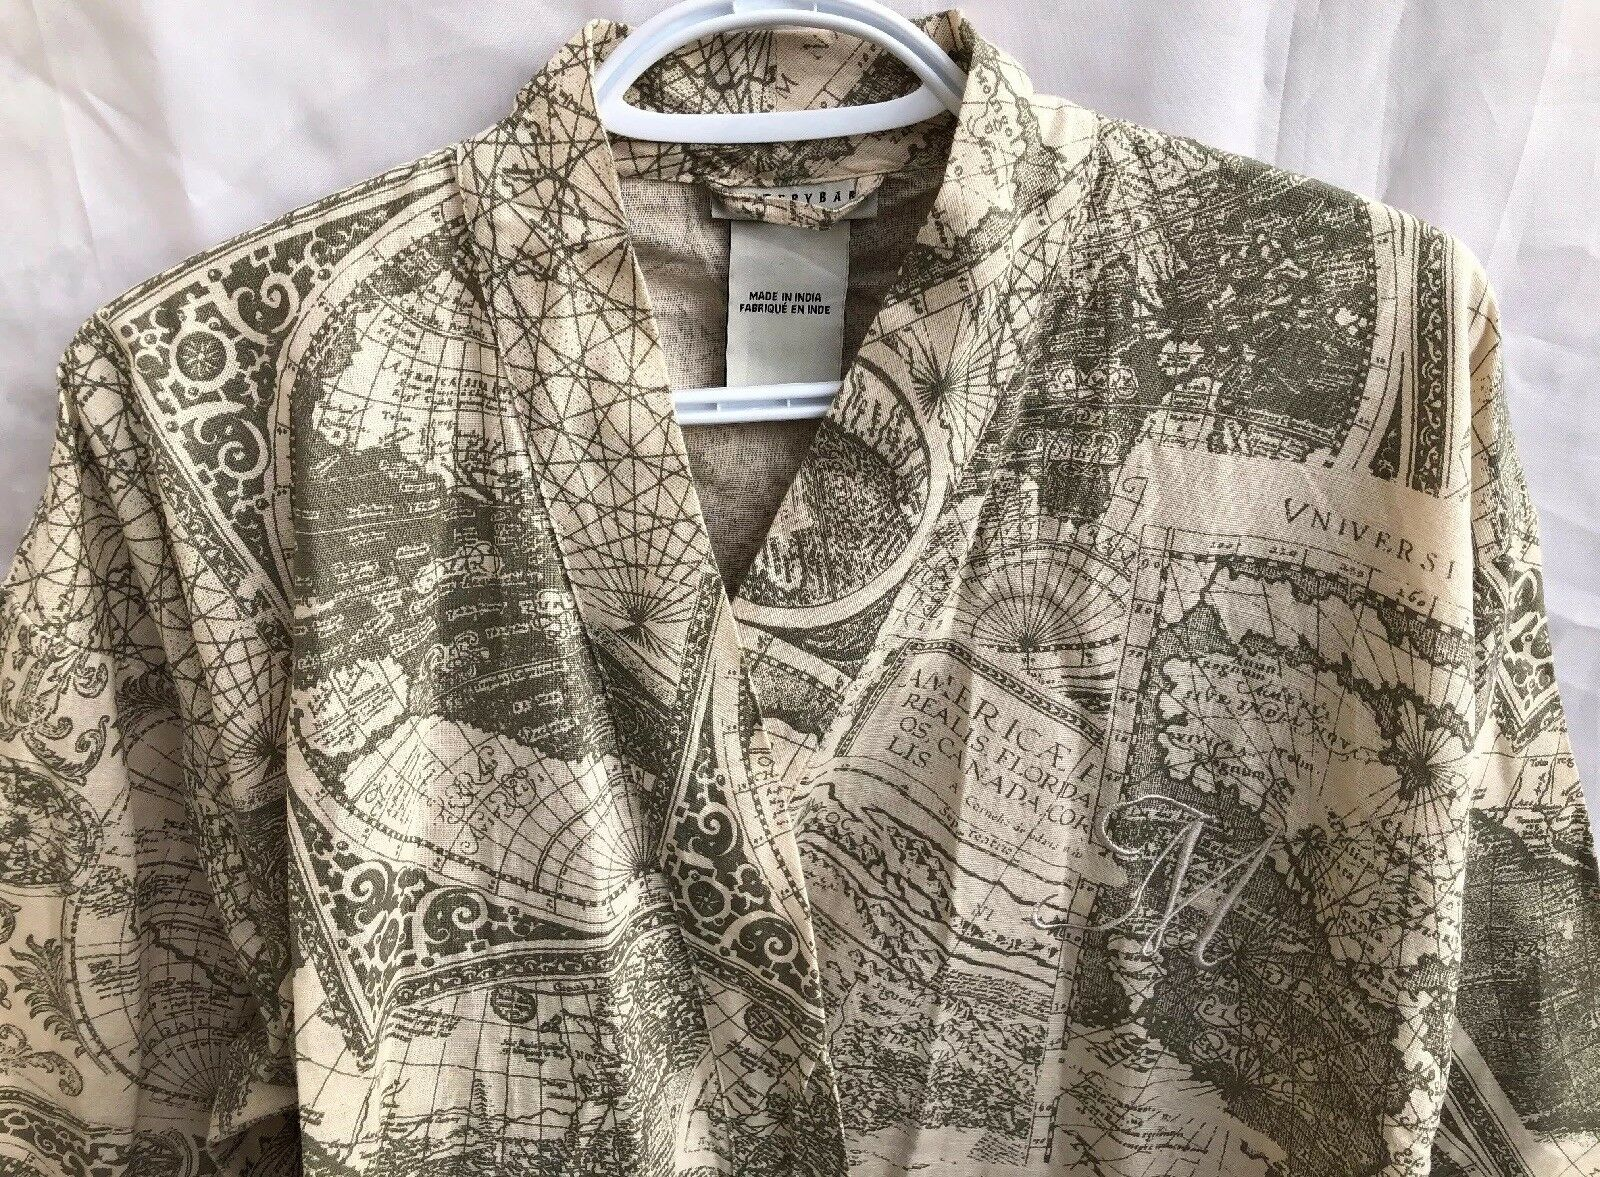 Potterybarn Womans Outdoor Patio M Initial Robe with Belt Loops Size XS